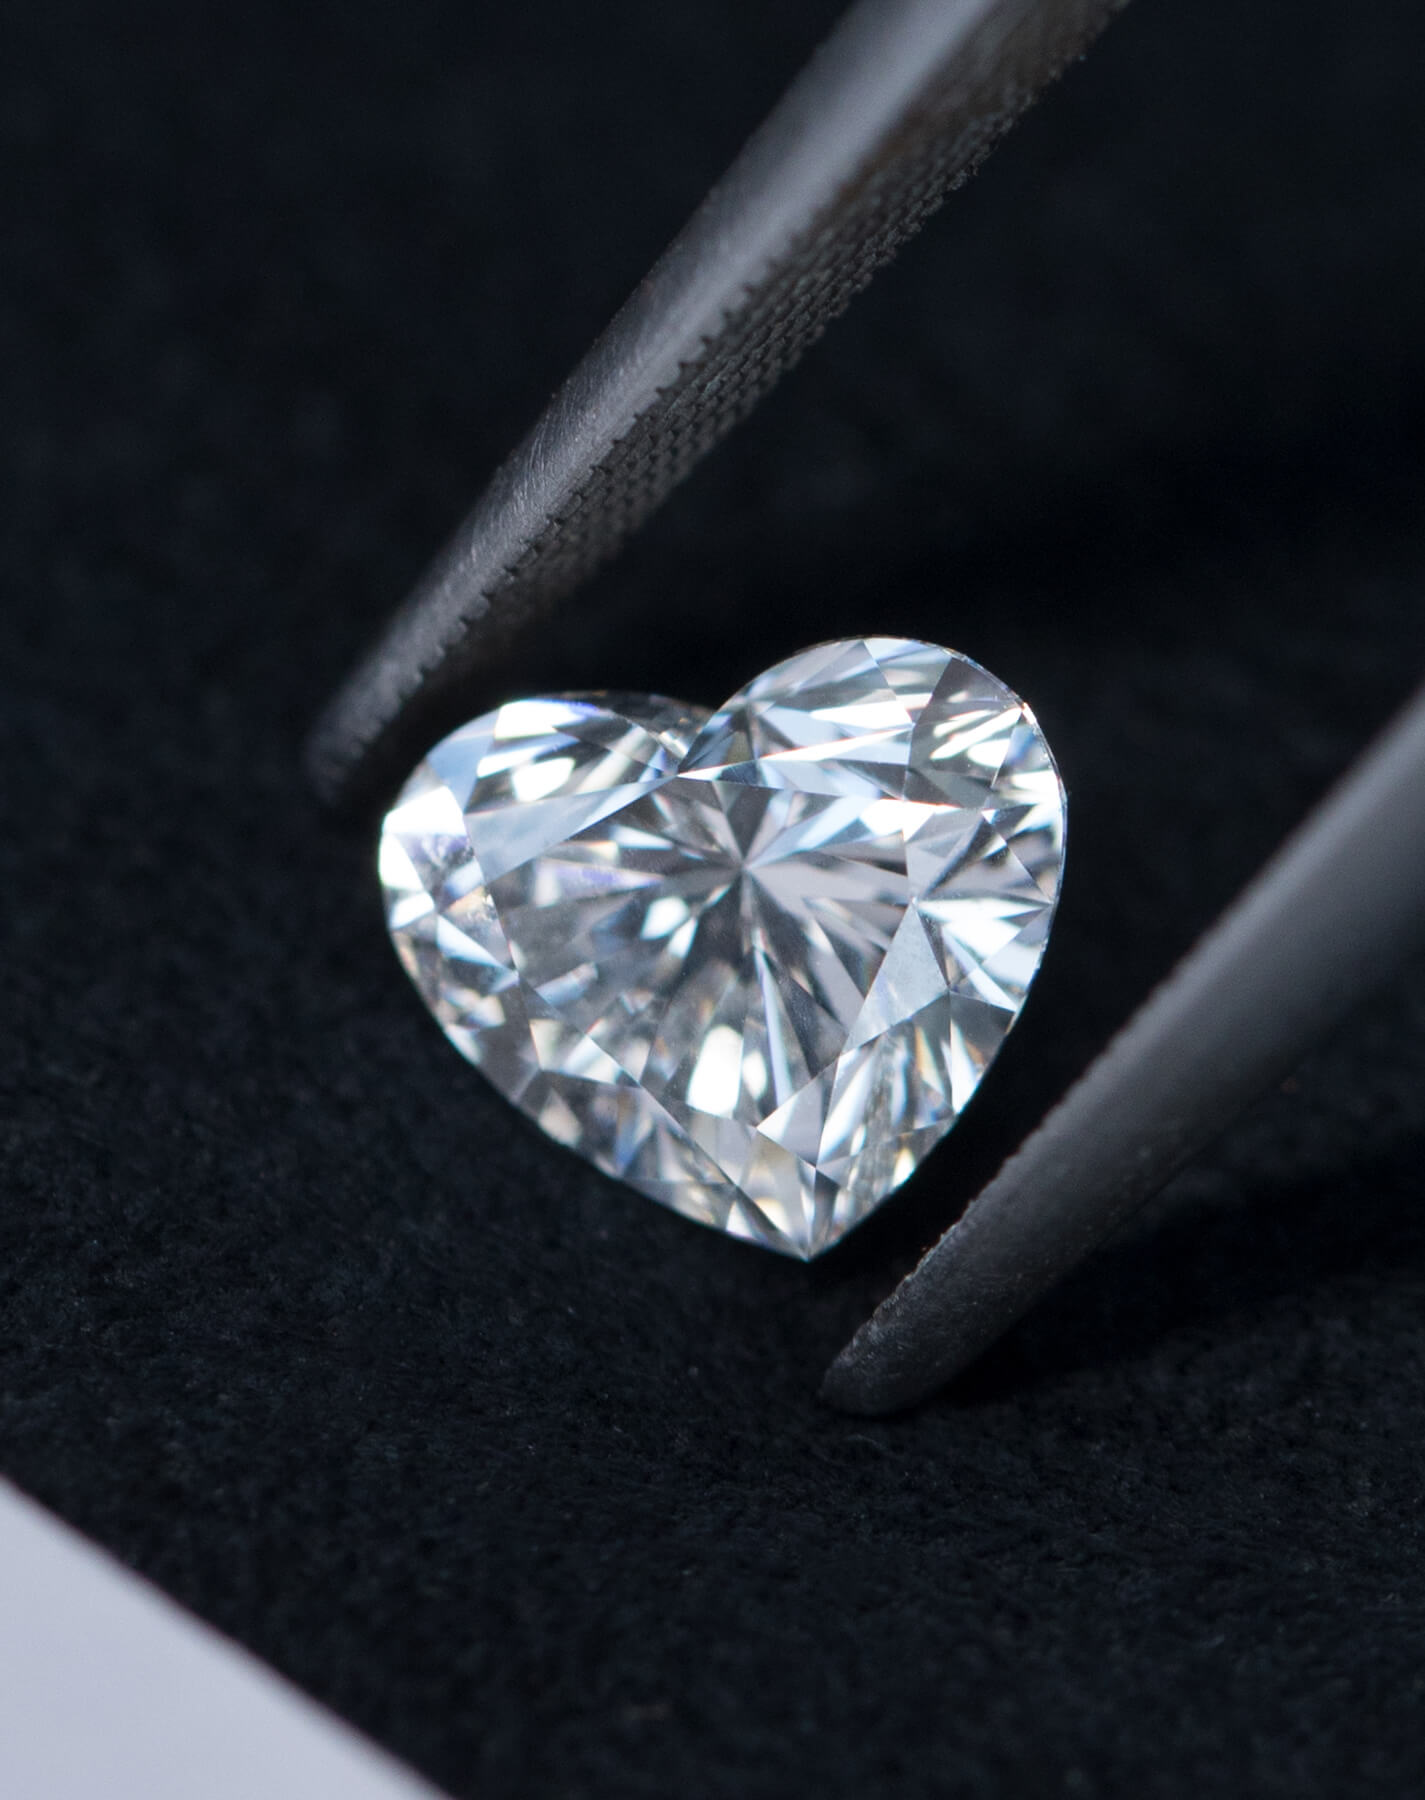 Image of heart shaped diamond being held by a pair of tweezers